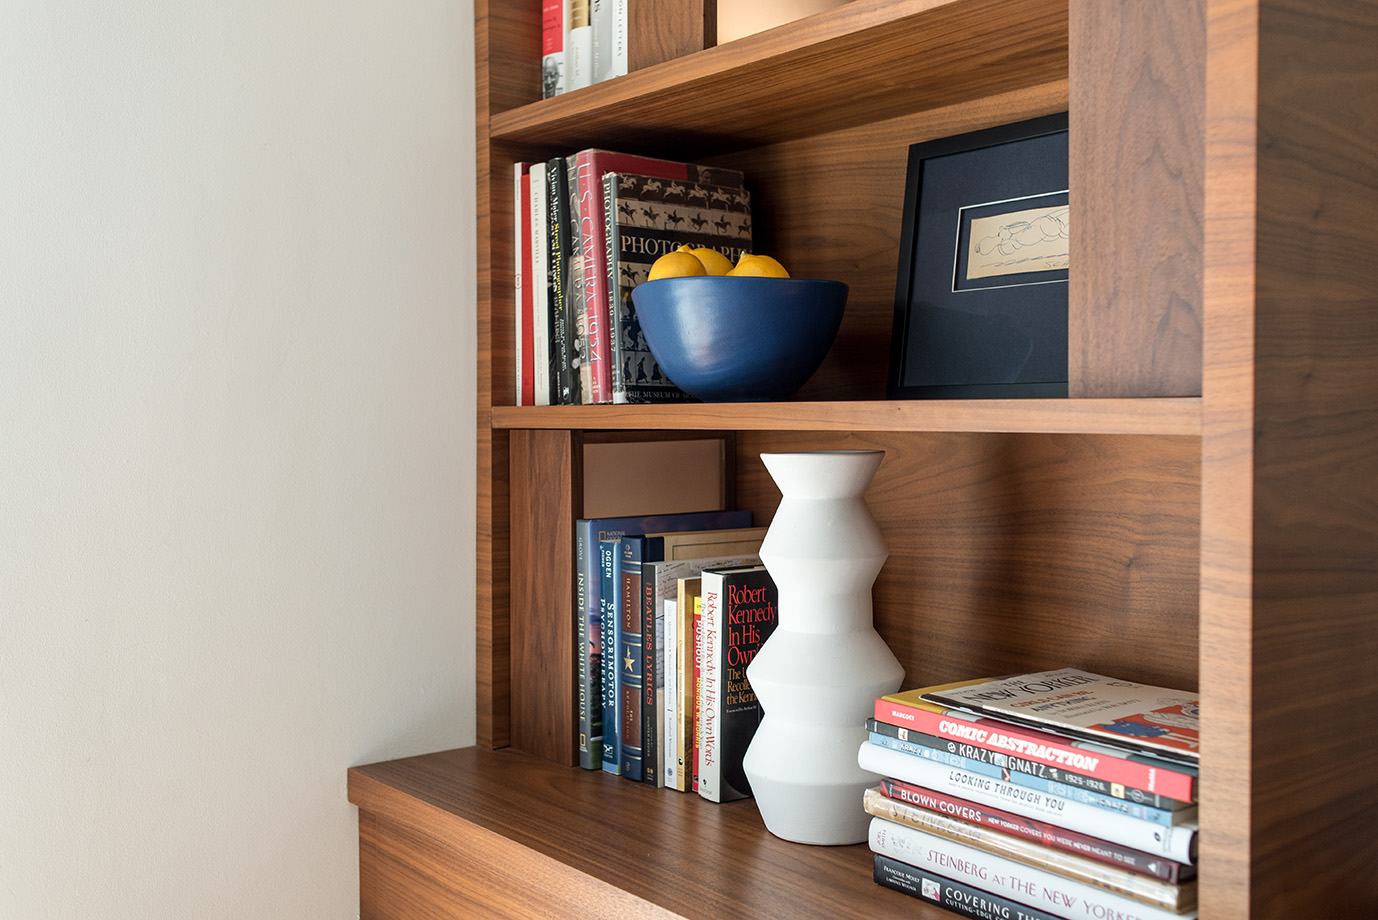 Fine woodworking defines this built-in shelving